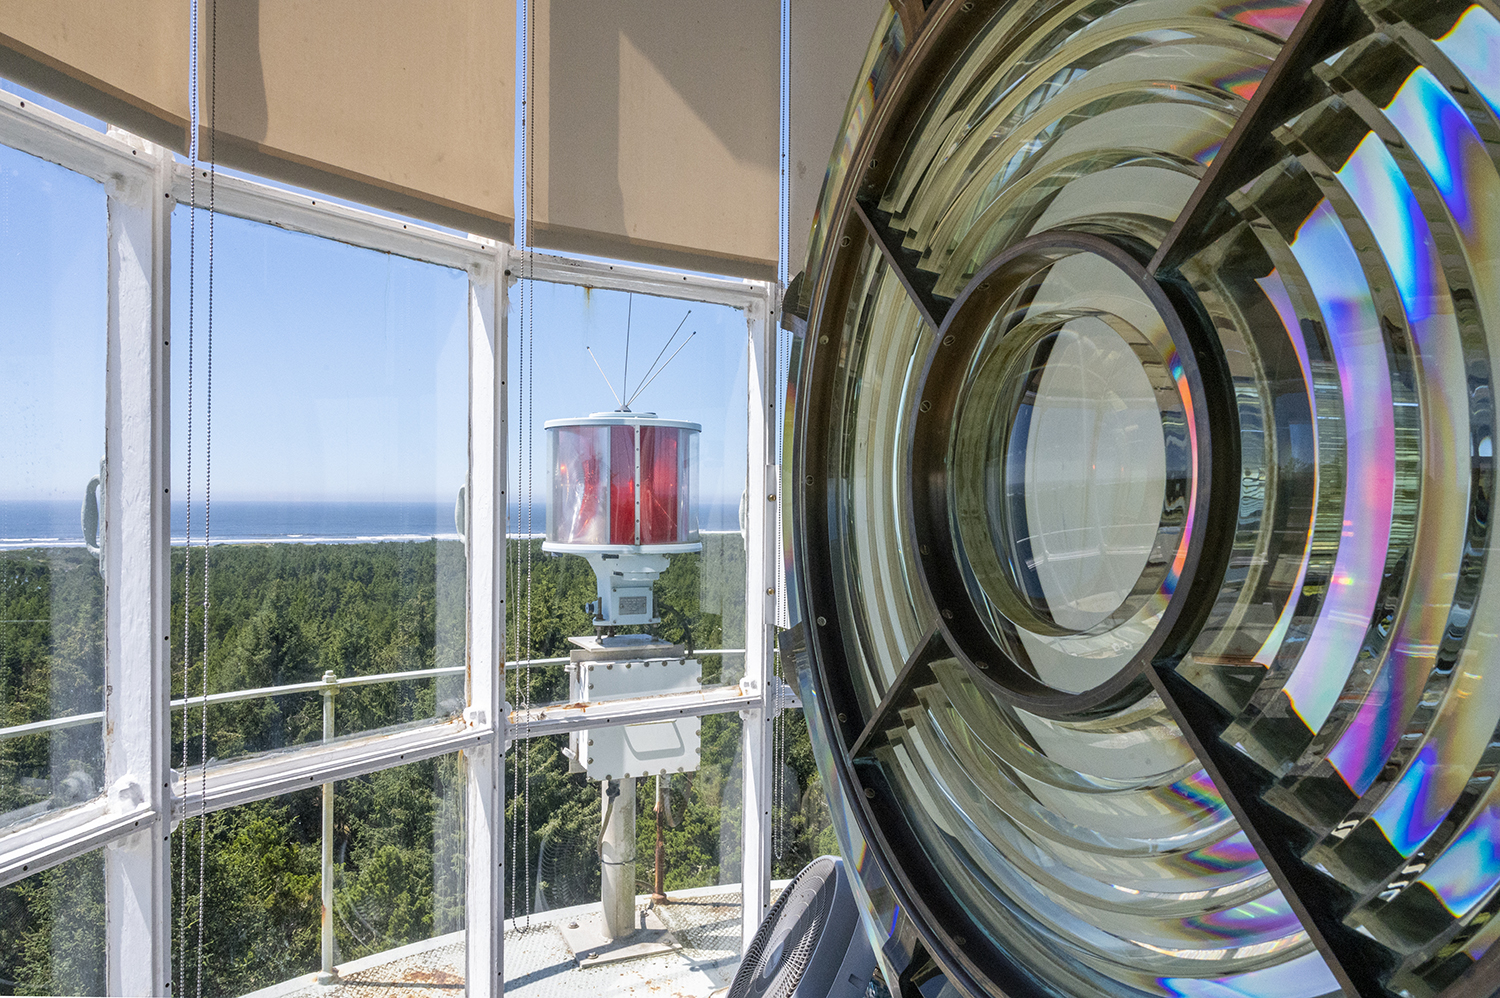 Enjoy a 360-degree view of the Pacific Ocean while standing beside the original 1895 Fresnel lens built in Paris, France. While the original lens was deactivated from use in 1992, a new rotational light was installed on the balcony that shines a beam for 19 miles. (Image: Rachael Jones / Seattle Refined)